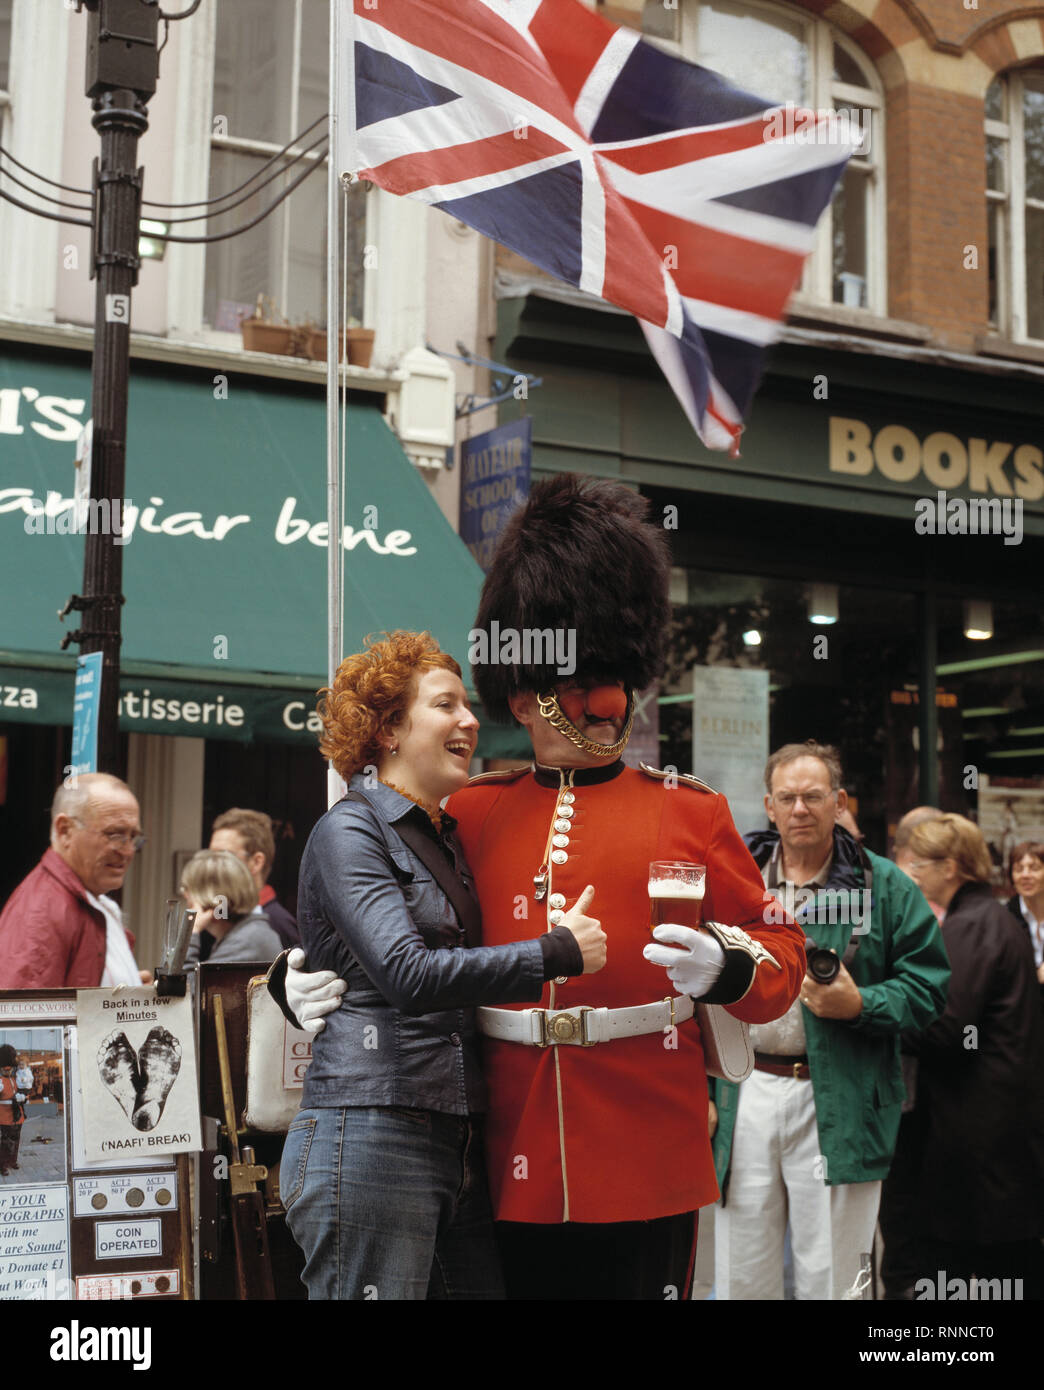 UK. England. Man dressed as a Coldstream Guard holding pint of beer and wearing red nose, posing with tourist for photograph in aid of Comic Relief. Stock Photo